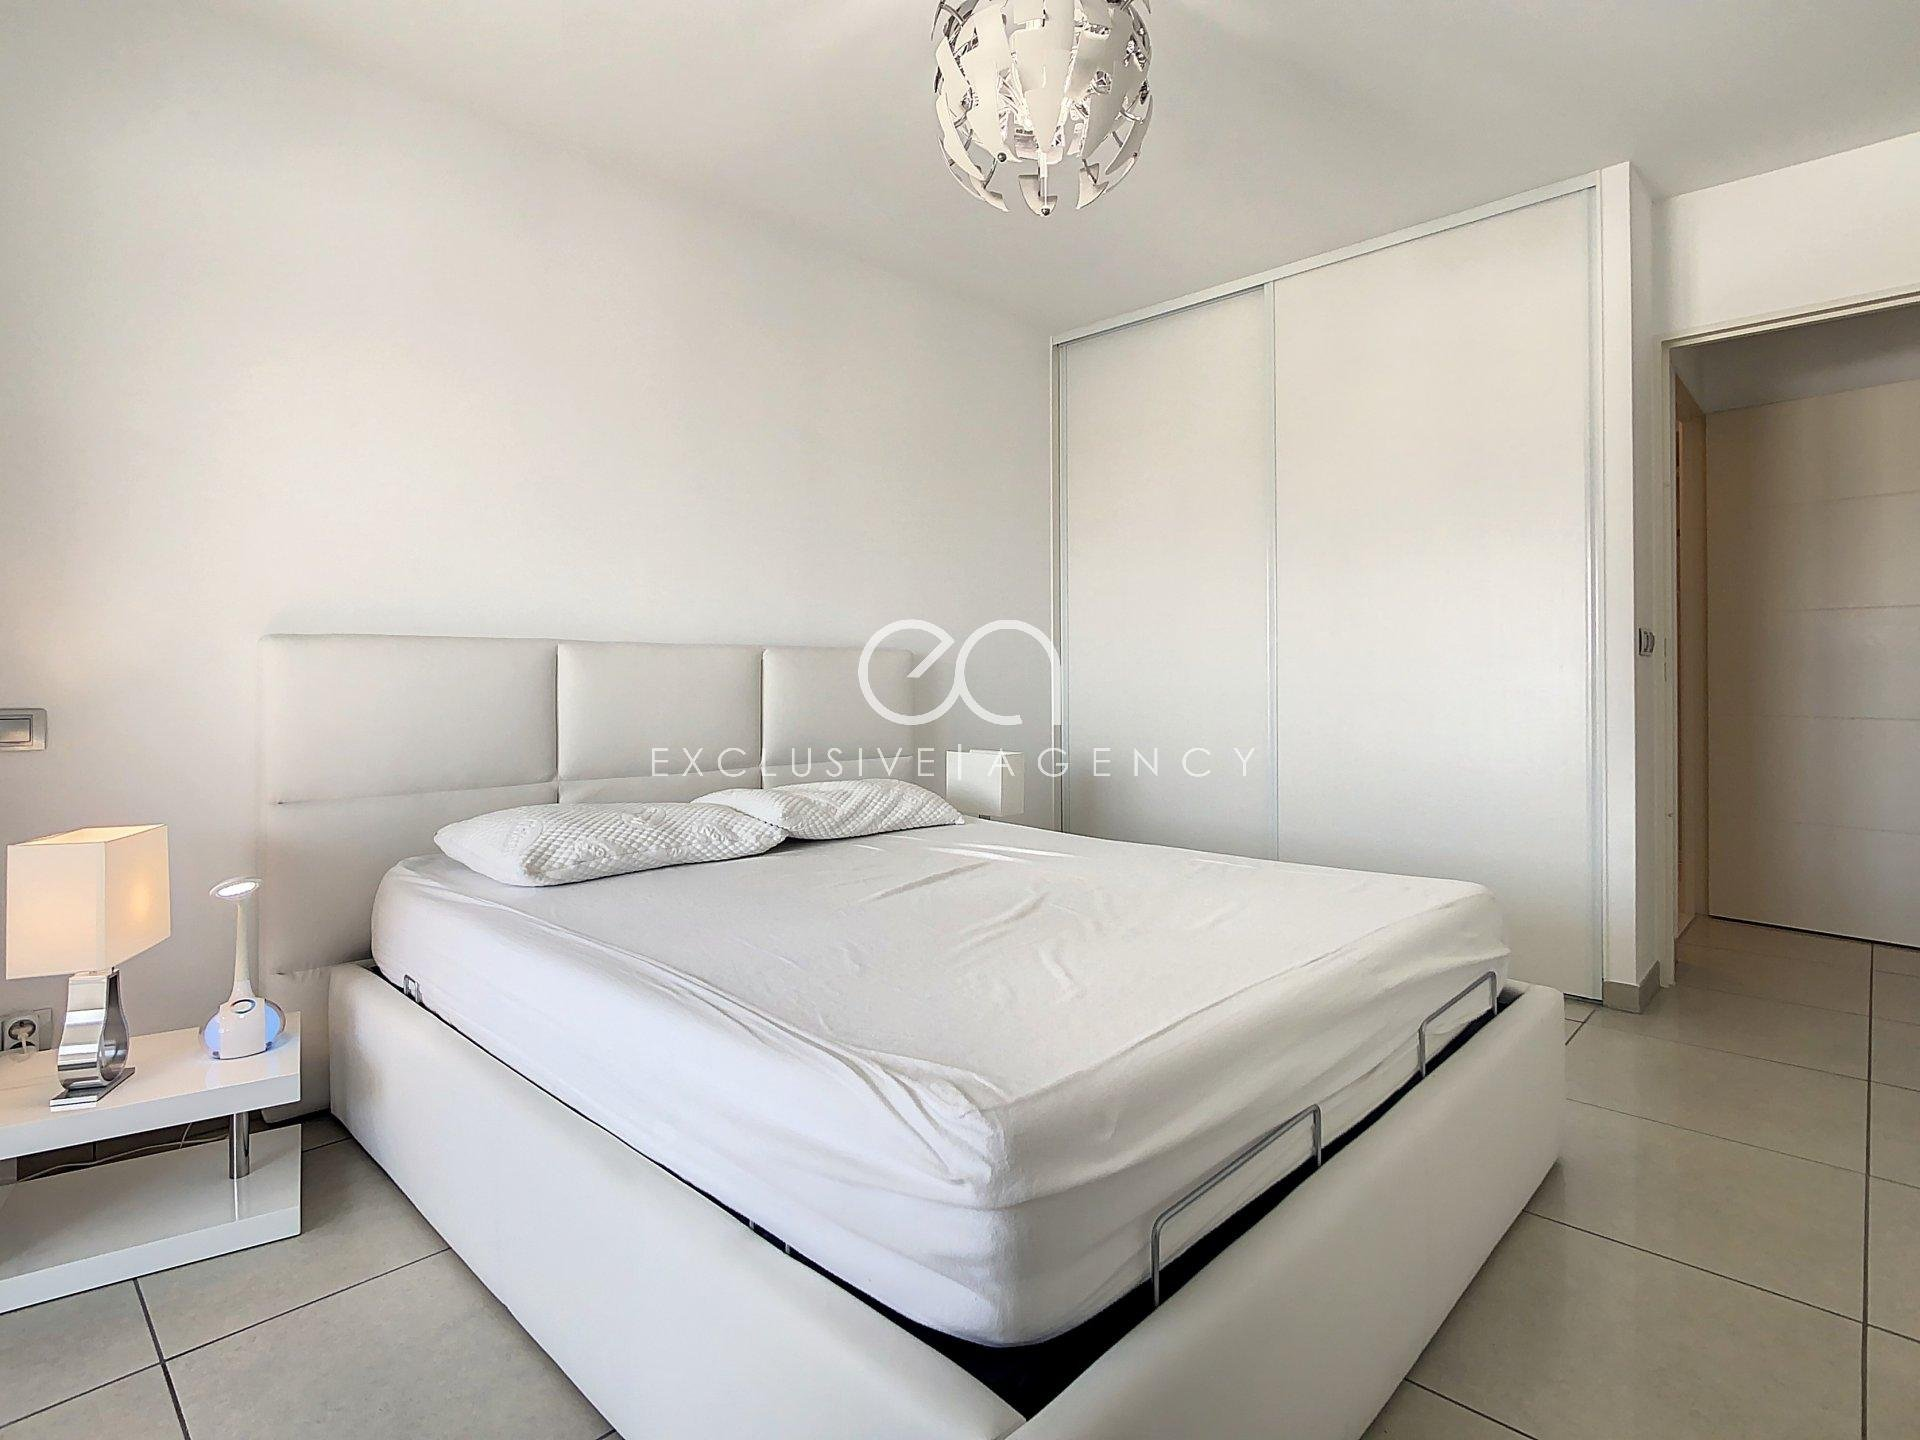 Rent Cannes furnised Cannes City Center 300m rue d'Antibes - Beautiful 2 bedrooms apartment of 71sqm, garage and cellar